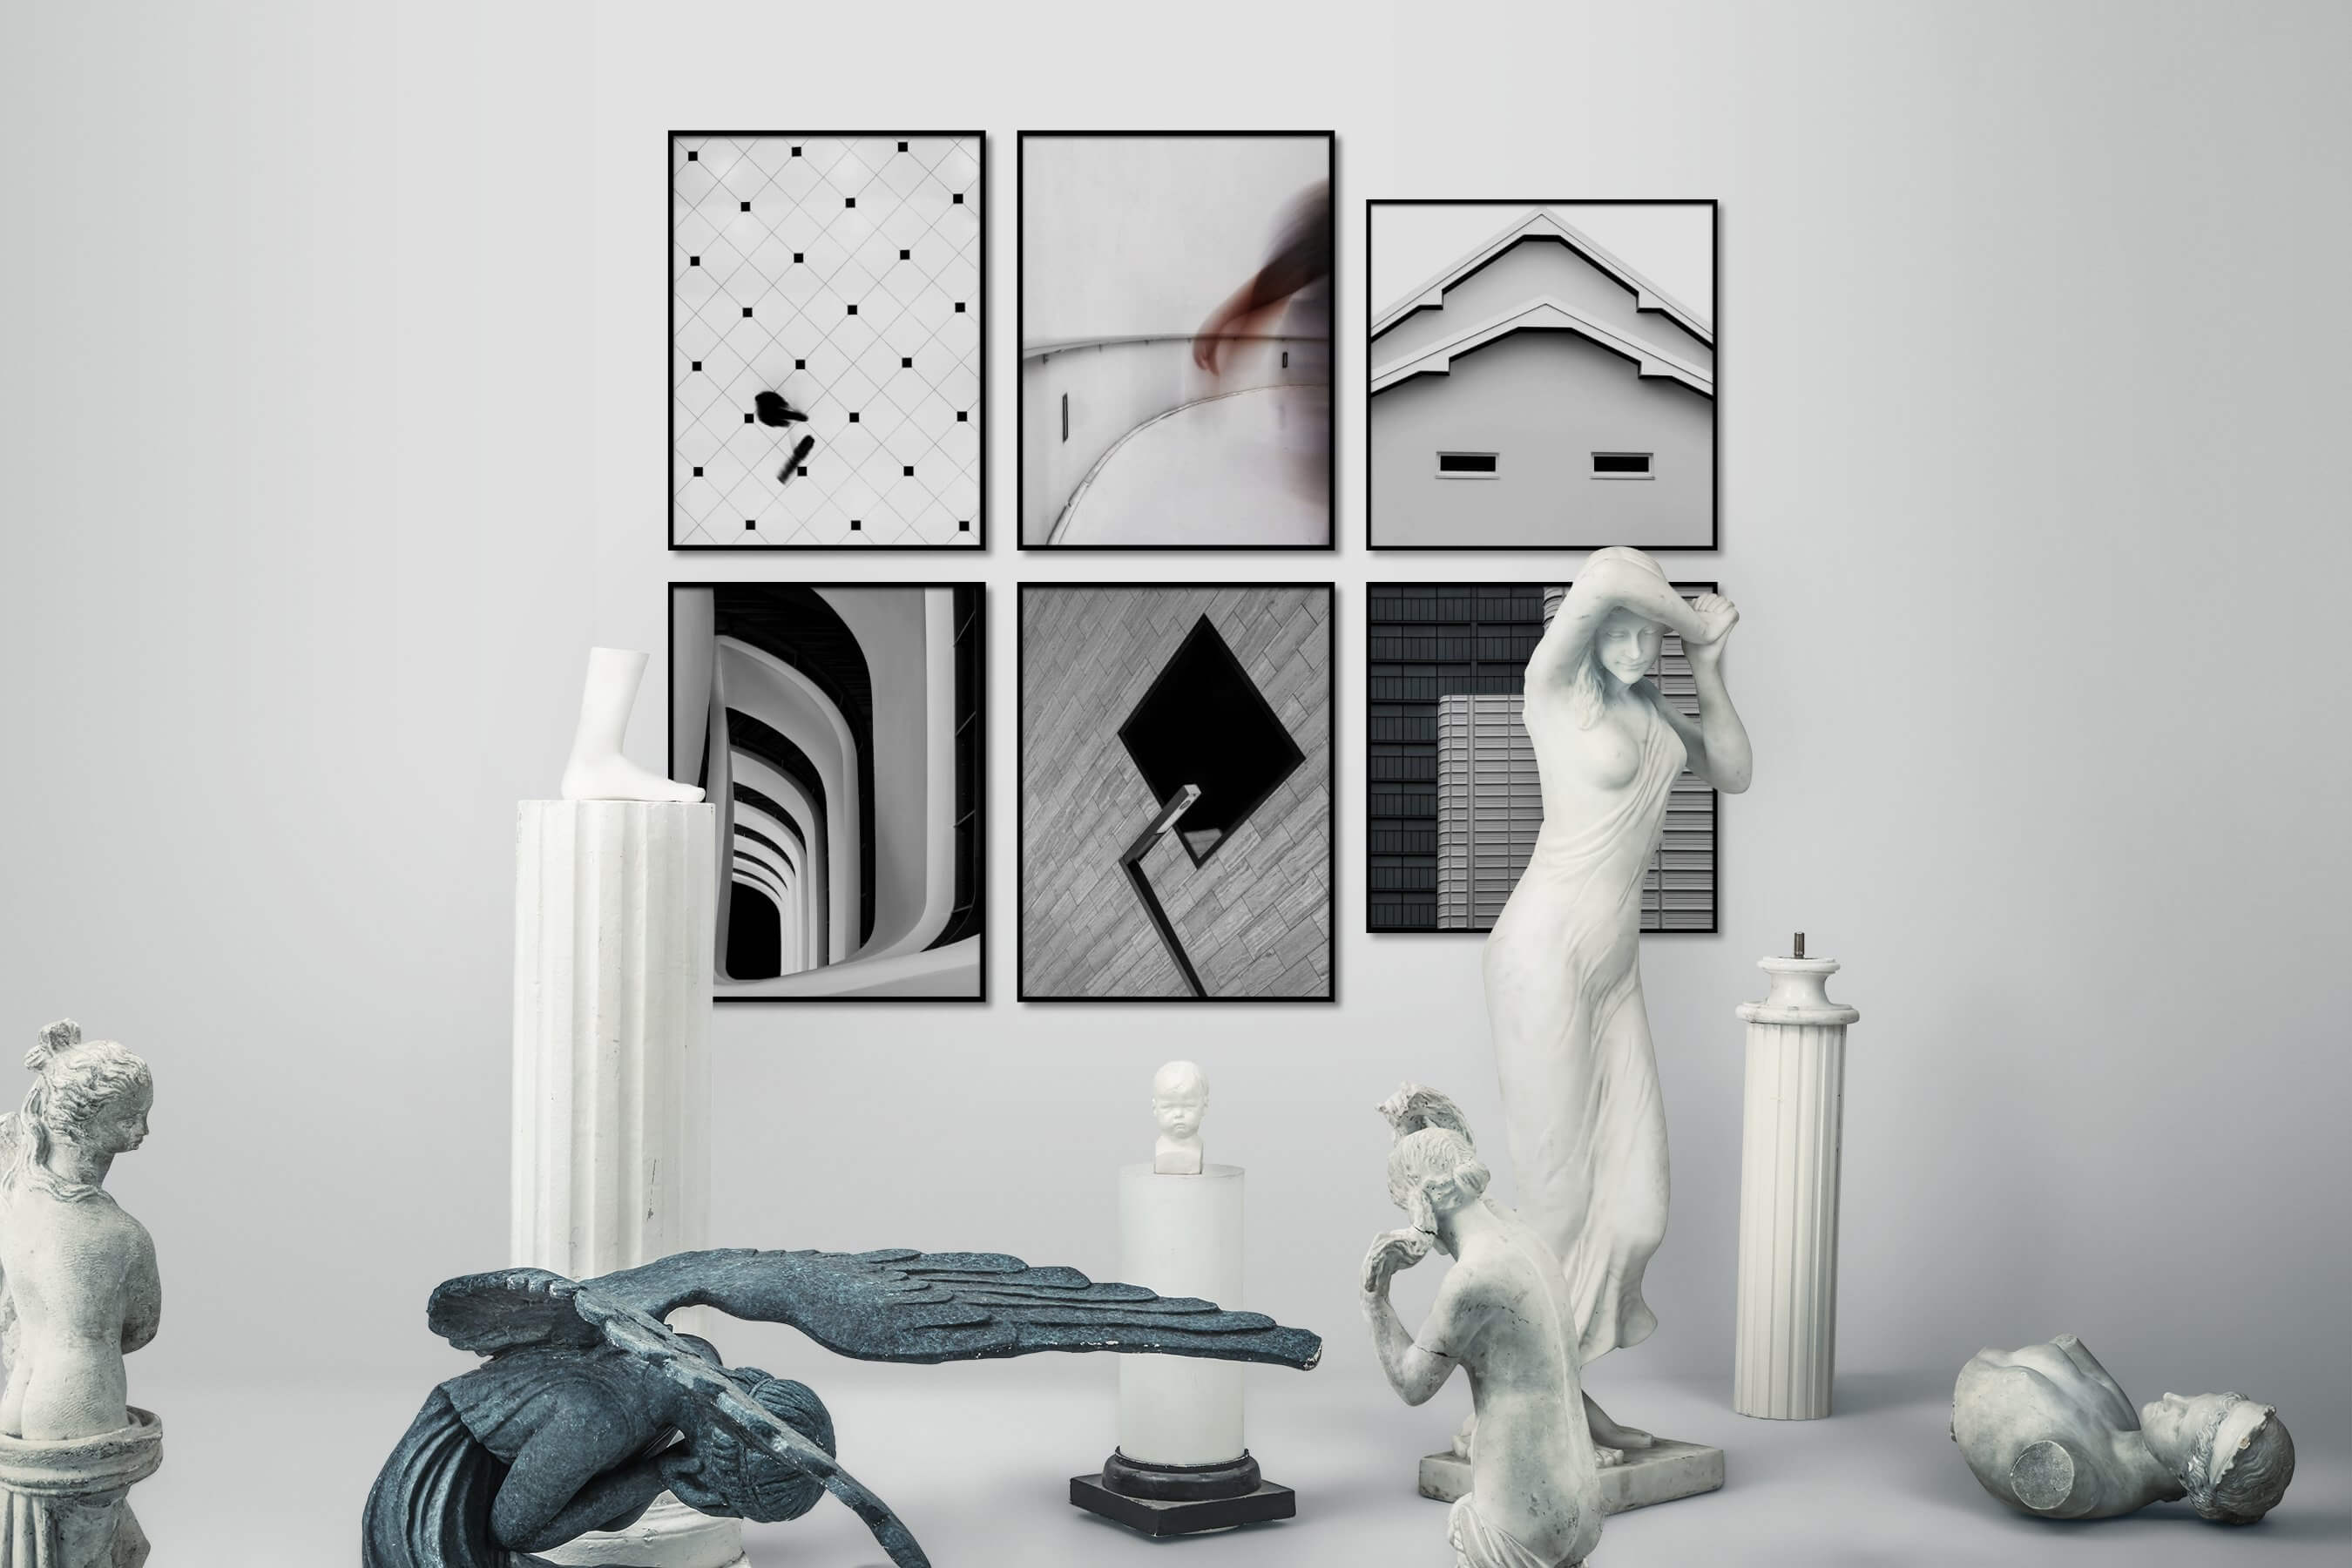 Gallery wall idea with six framed pictures arranged on a wall depicting Black & White, For the Minimalist, City Life, and For the Moderate